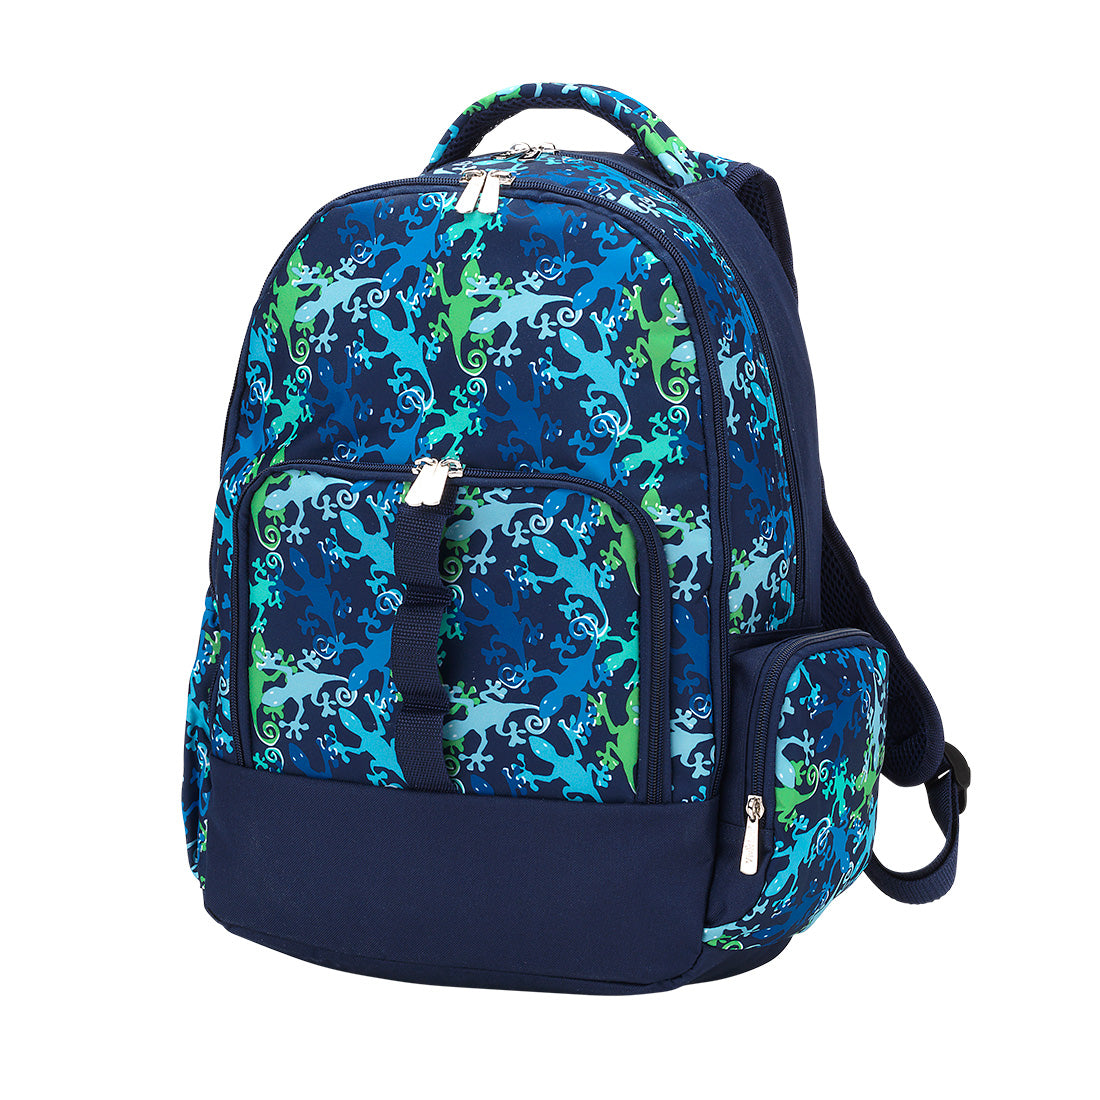 Personalized this Blue and Green Gecko Backpack